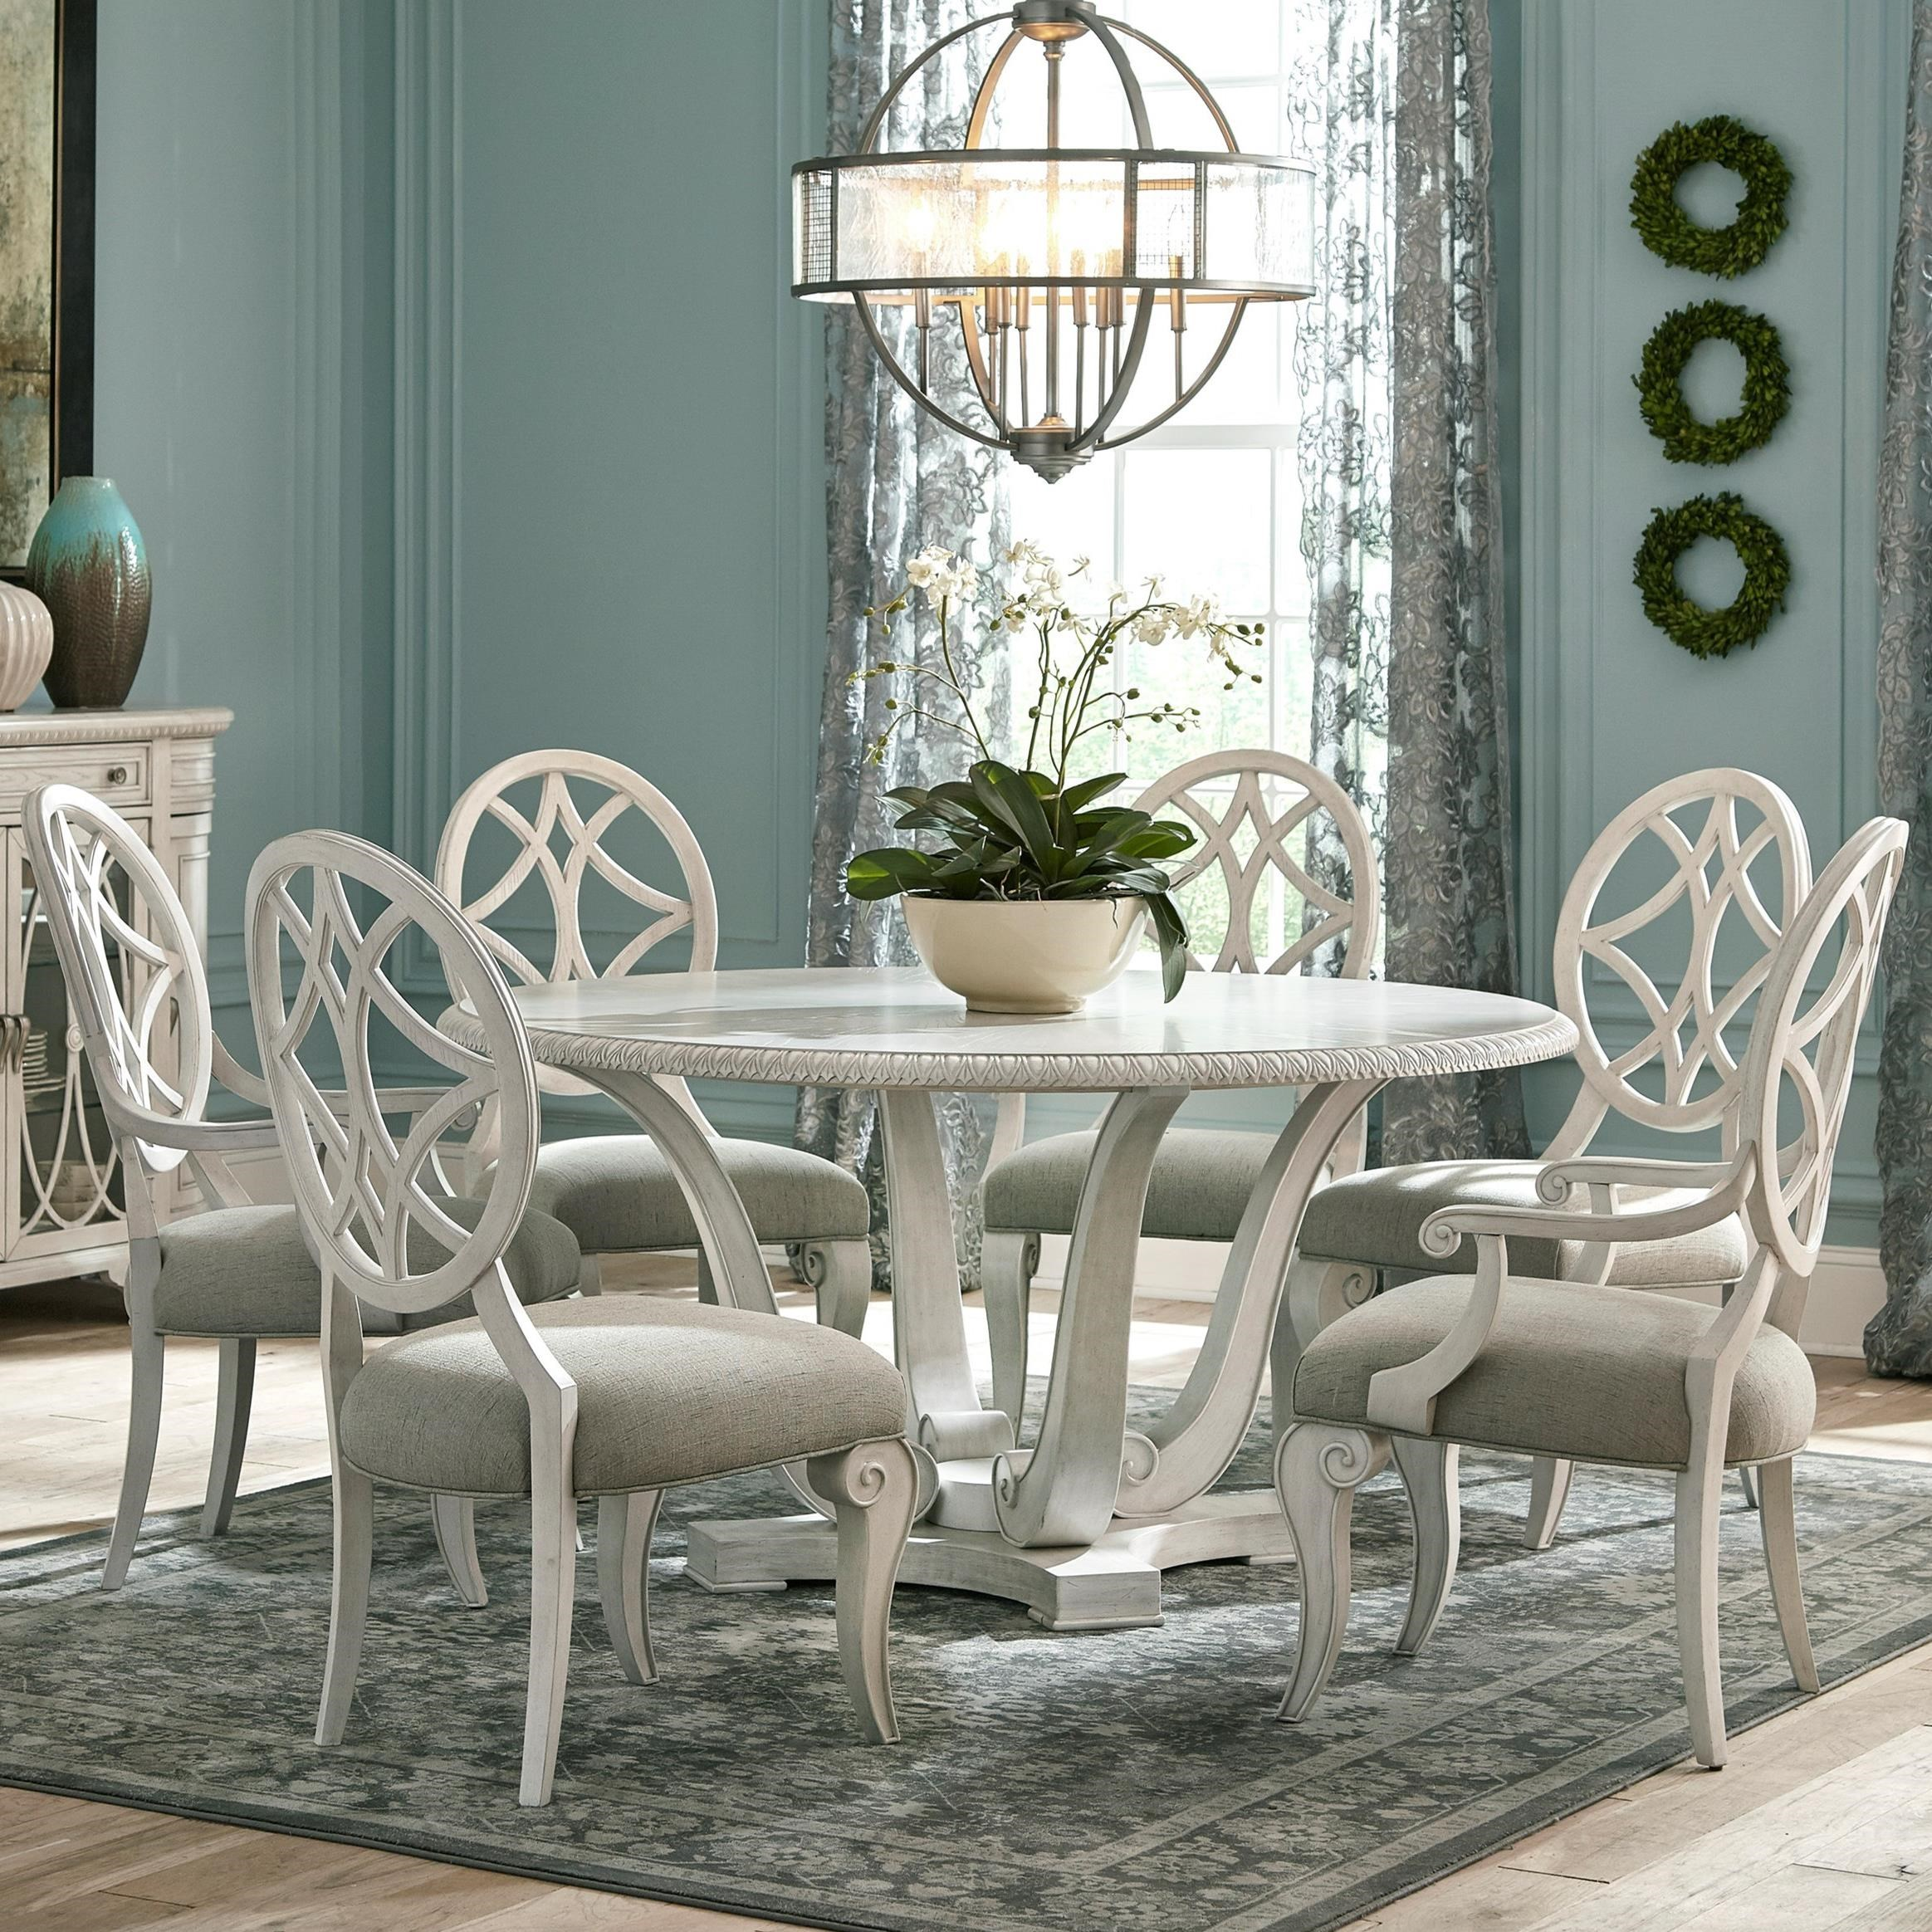 Jasper County 7 Pc Dining Set by Trisha Yearwood Home Collection by Klaussner at Darvin Furniture